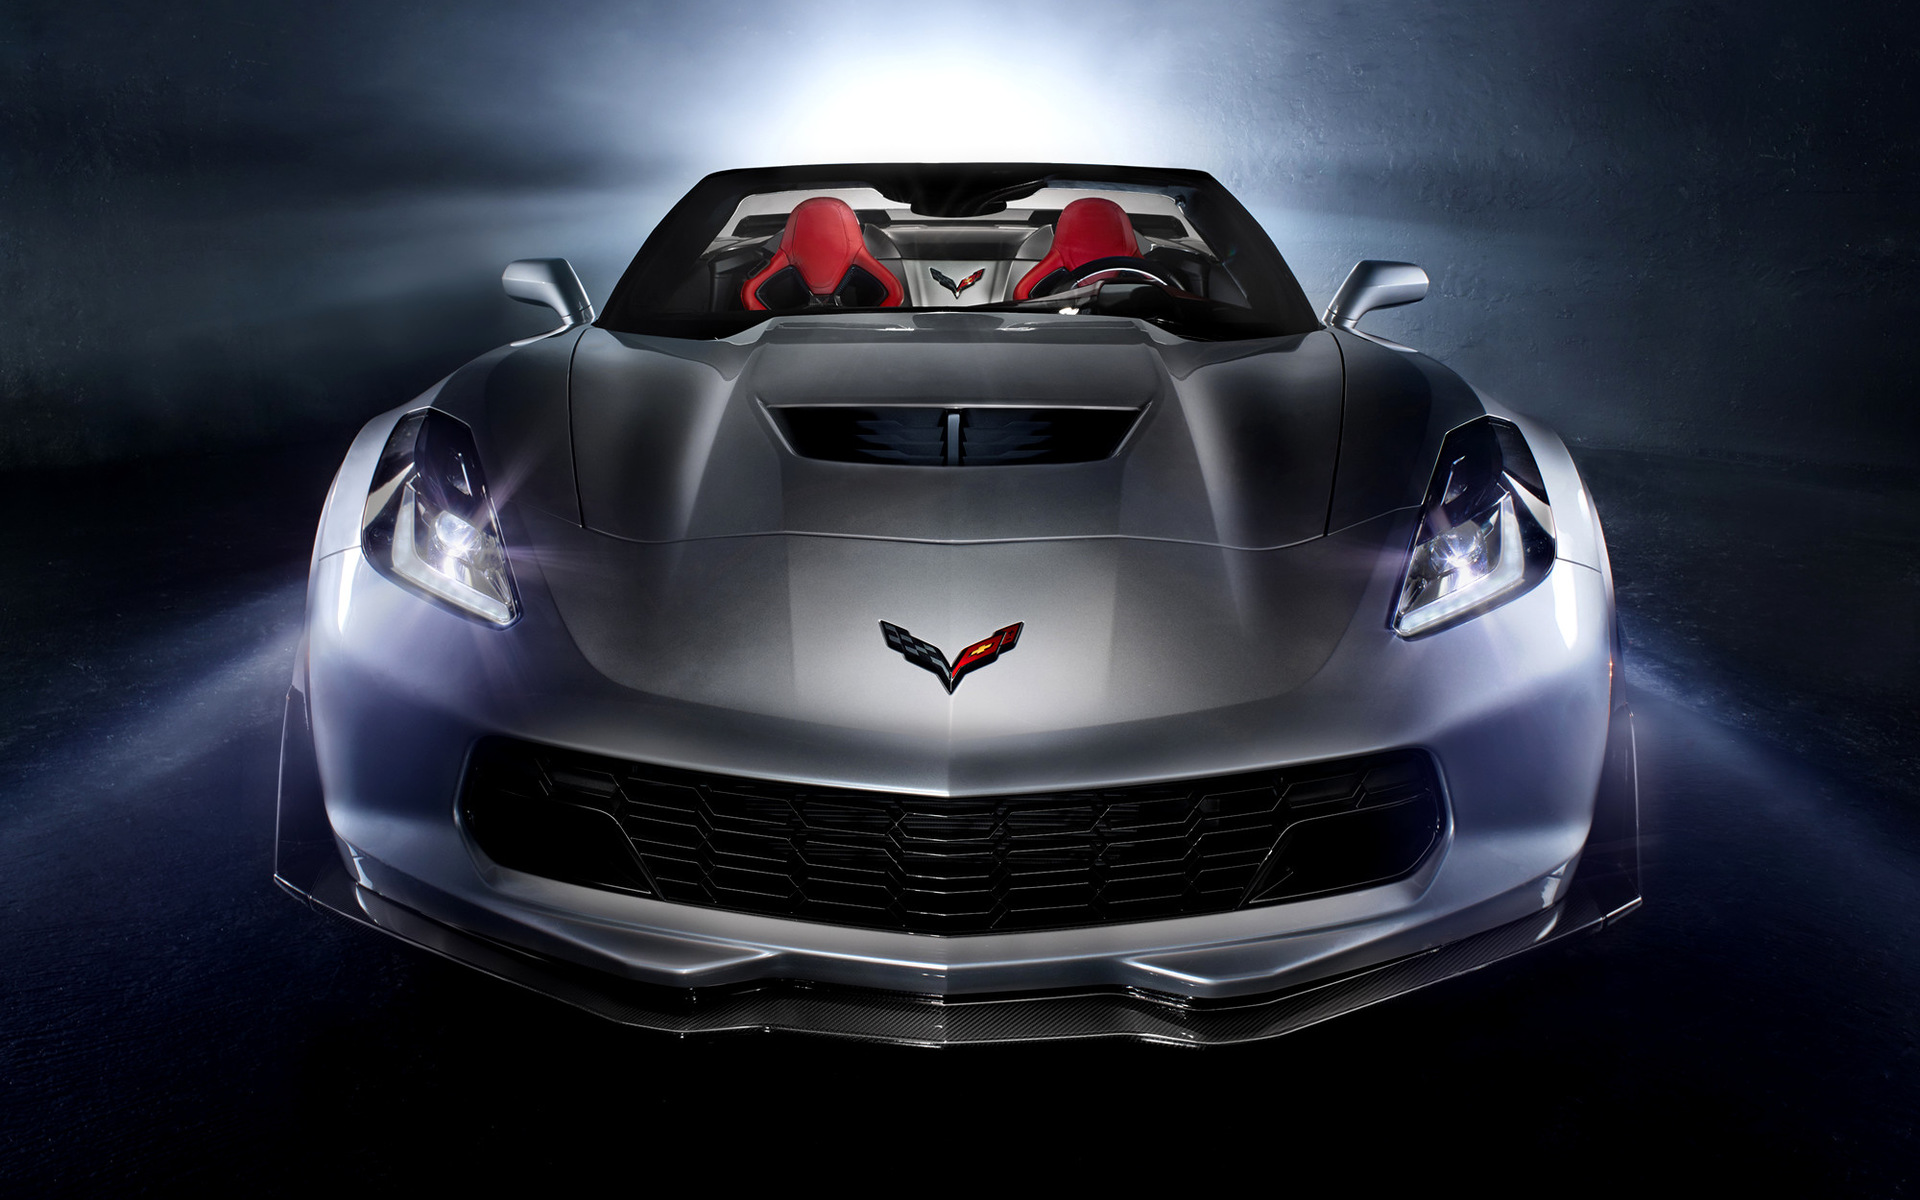 2015 Chevrolet Corvette Z06 Convertible - Wallpapers and ...